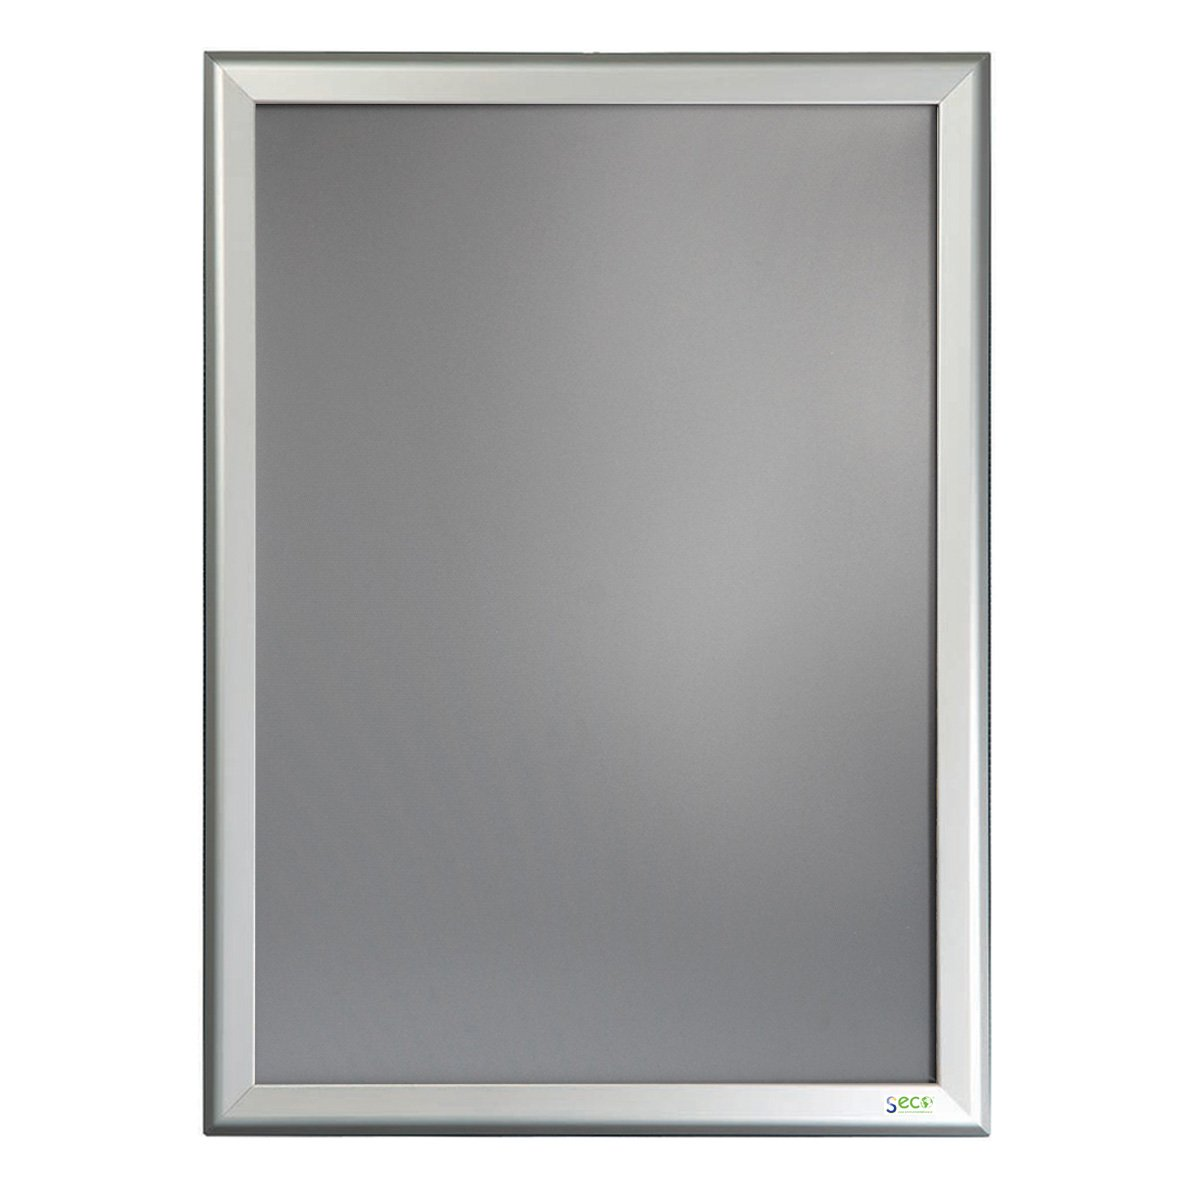 SECO 32SN3648-SV Luxury Snap Frame, 36'' x 48'', Silver